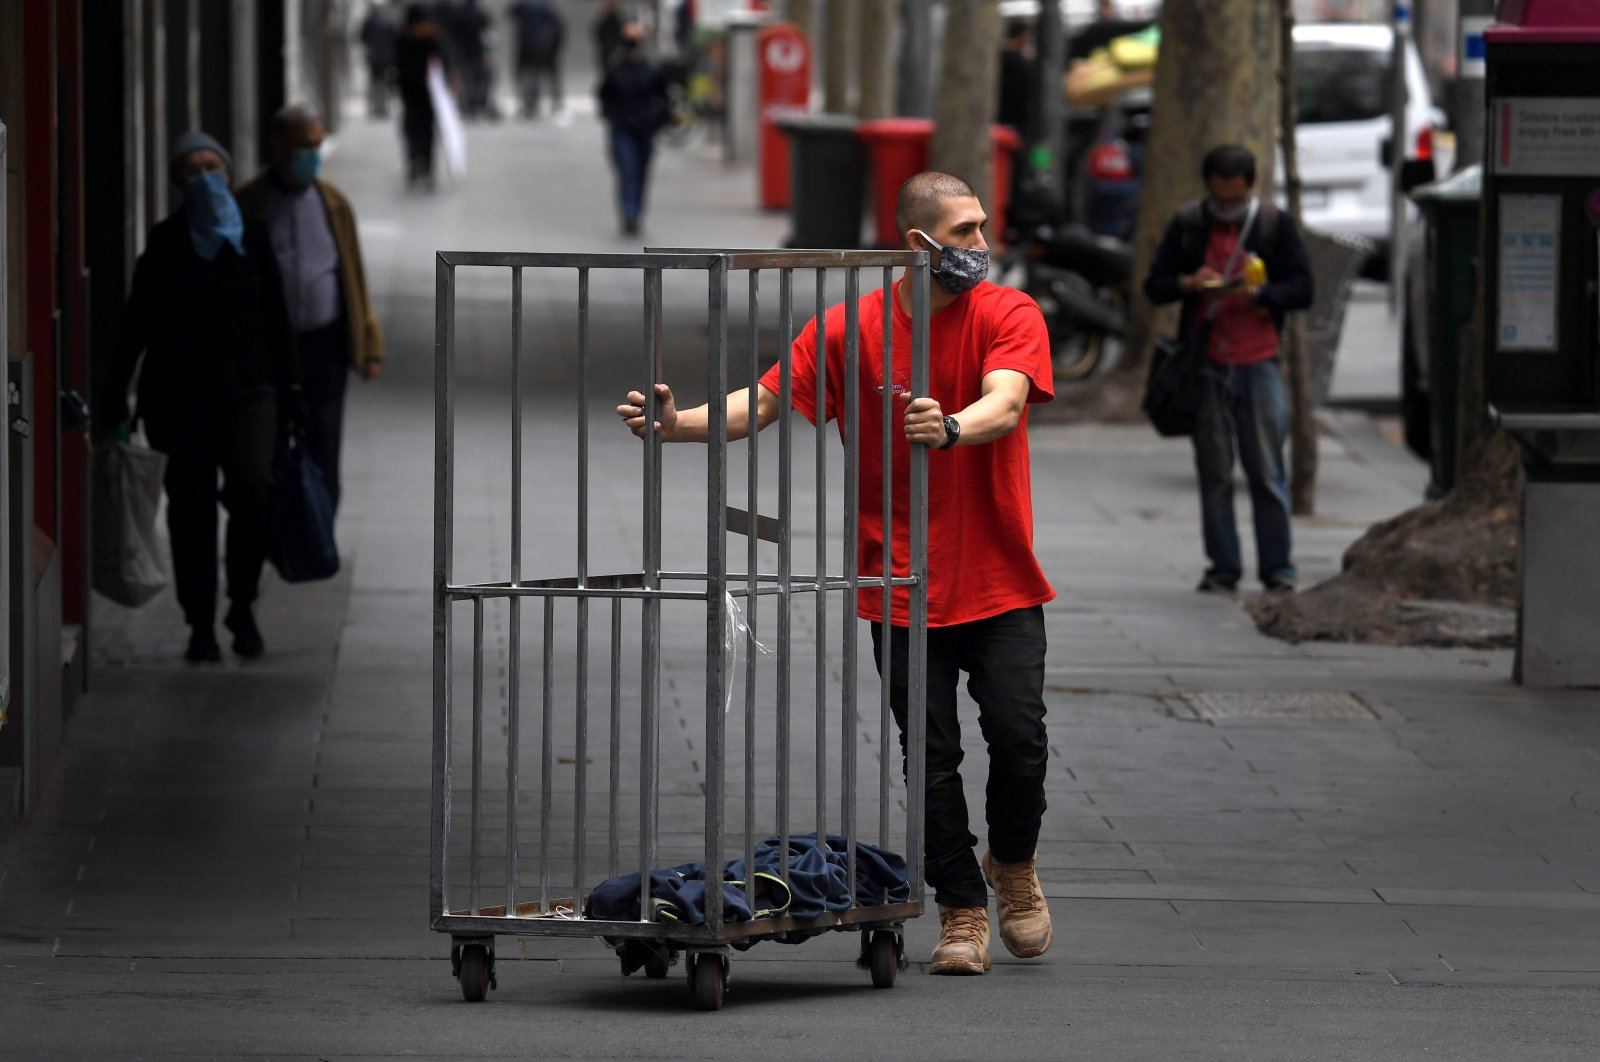 A man pushes an empty trolley along a street in Melbourne's city center, Australia, Sept. 17, 2020. (AFP Photo)